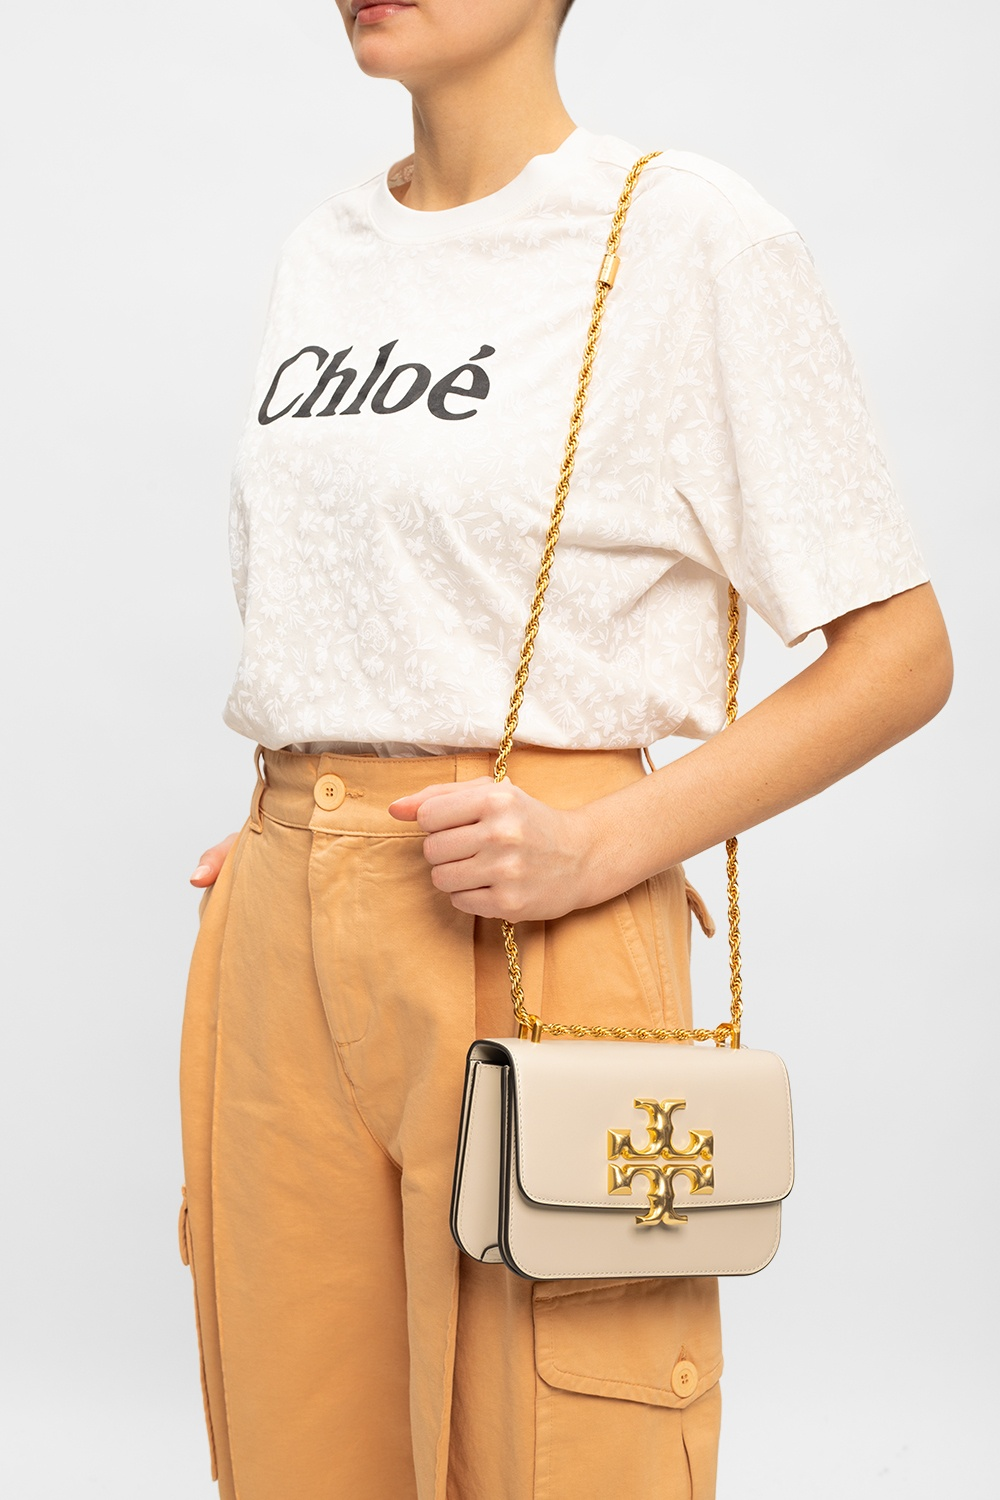 Tory Burch 'Eleanor' shoulder bag